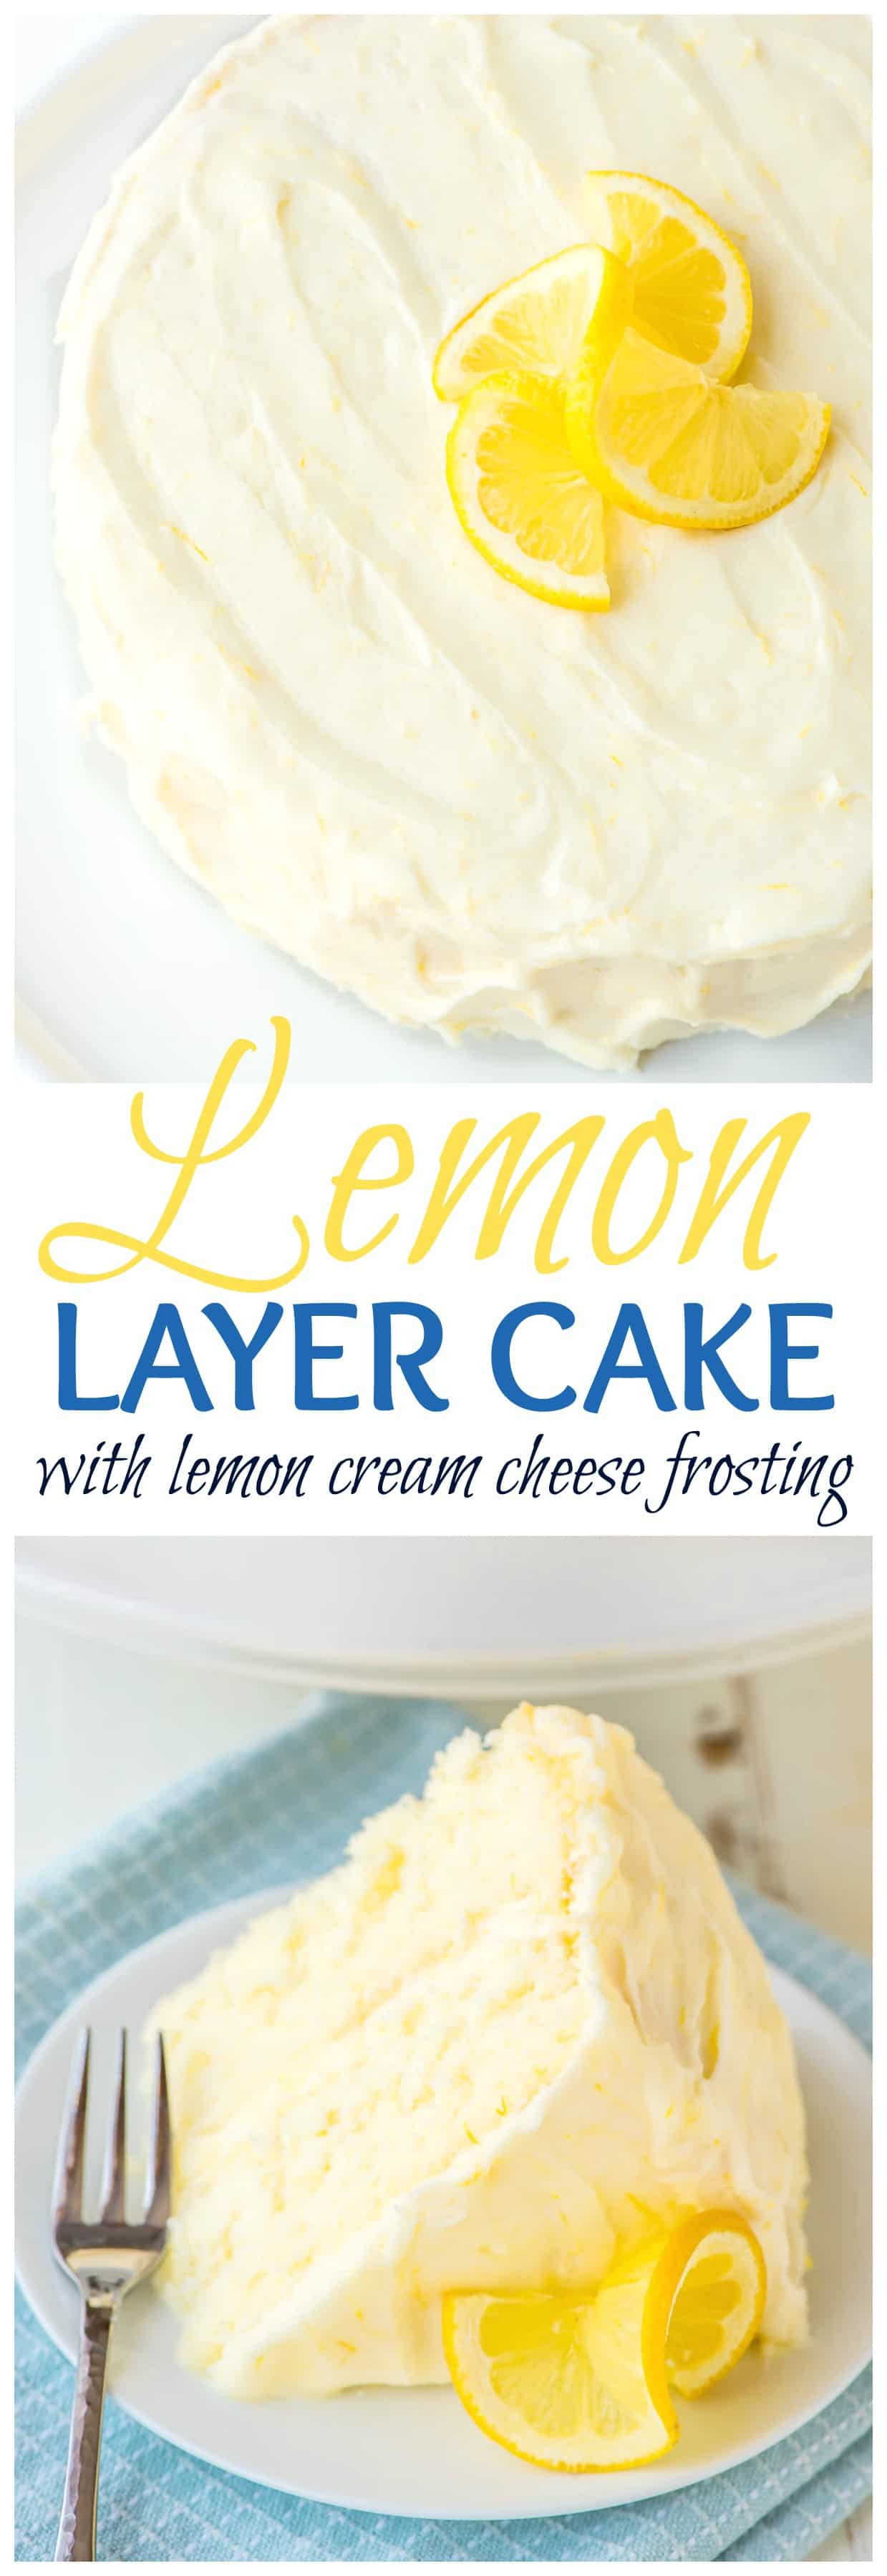 Supremely Moist And Flavorful Lemon Cake Slathered With Homemade Frosting This Is The ULTIMATE